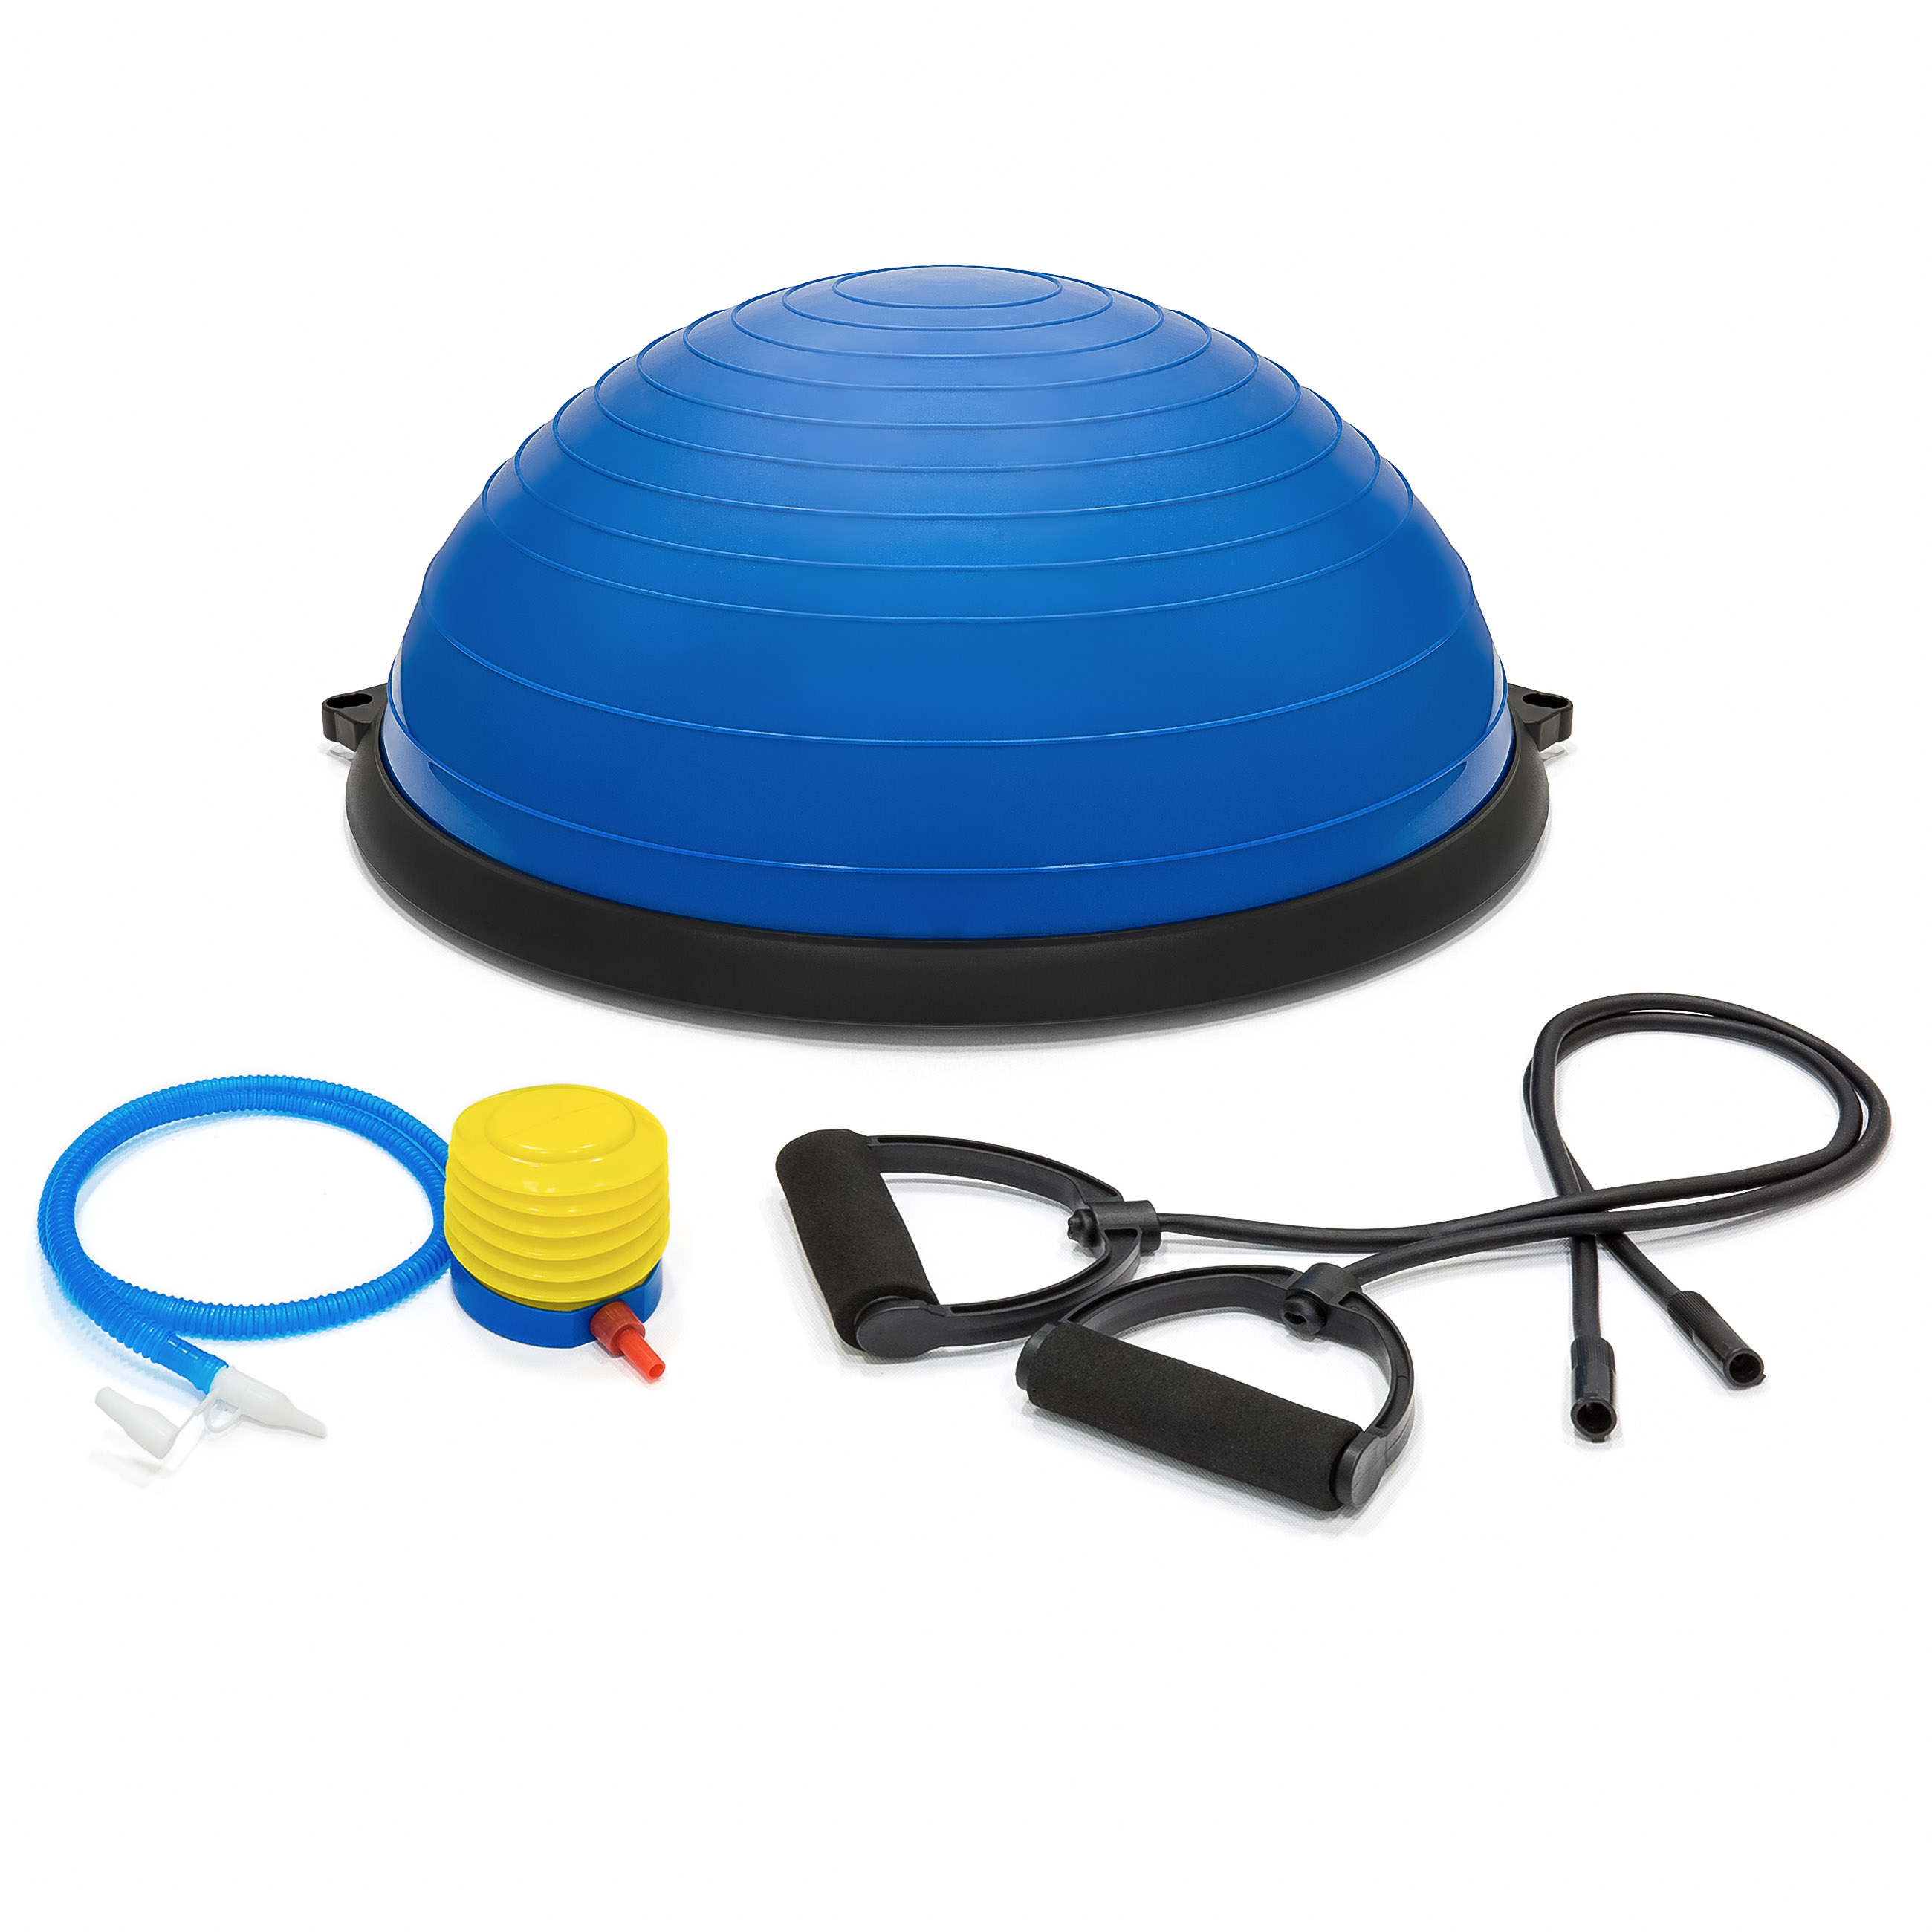 Yoga Balance Trainer Set, Exercise Ball with 2 Resistance Bands & Pump, Blue